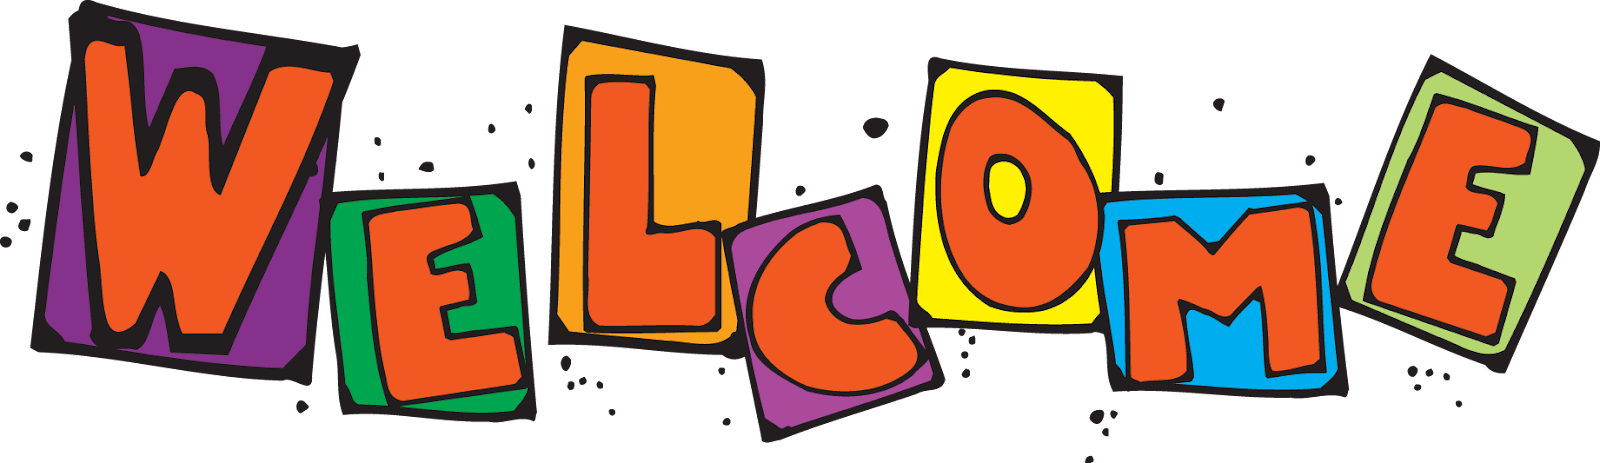 welcome-clipart-di86qp8ie.png